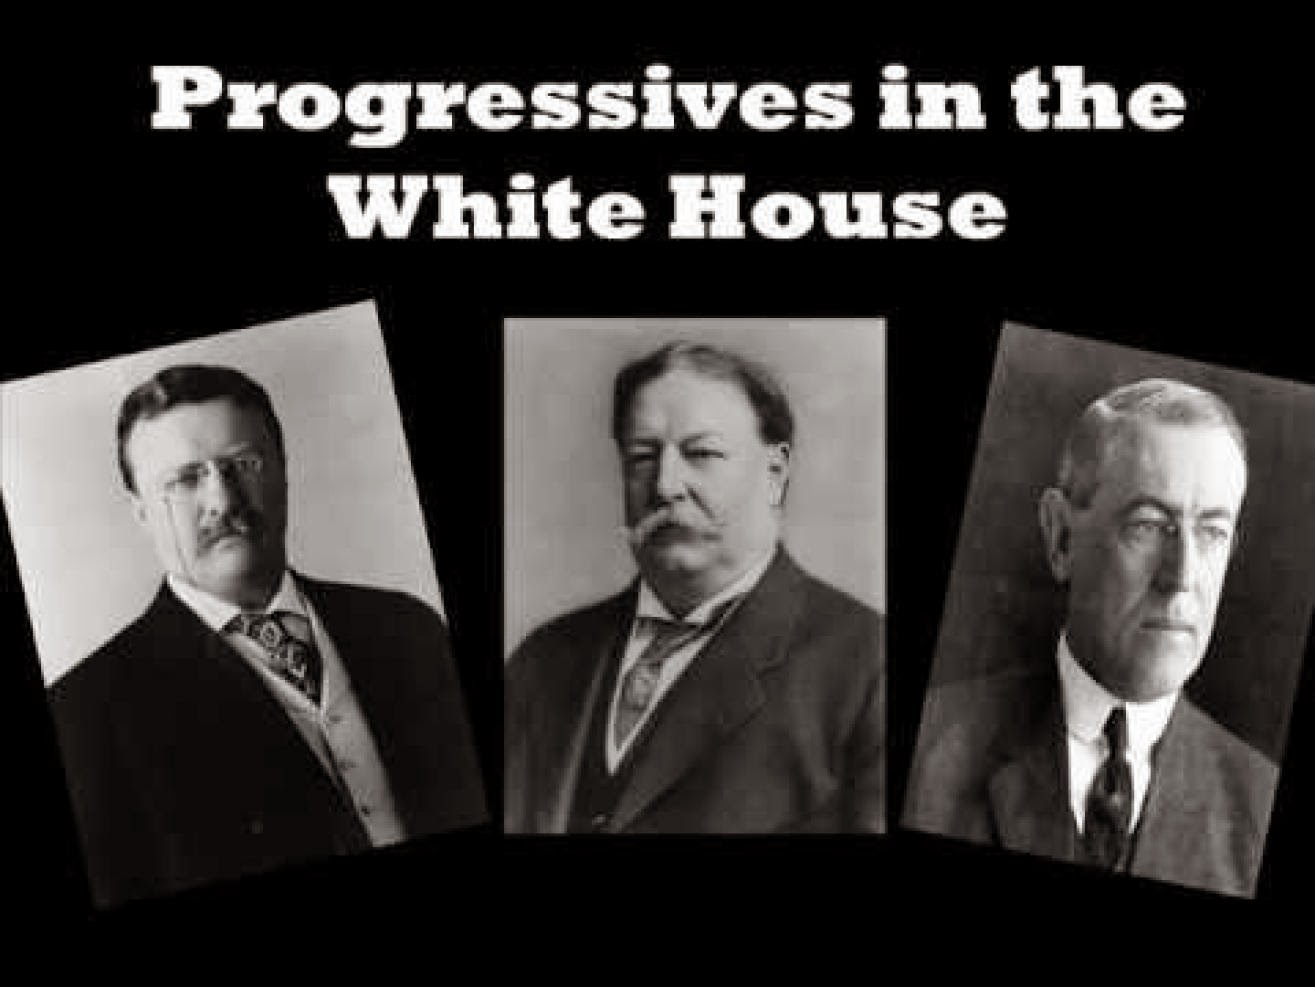 progressive presidents View progressive presidents comparison from history 101 at reagan h s, houston progressive presidents comparison the progressive era was a period of widespread social activism and political.